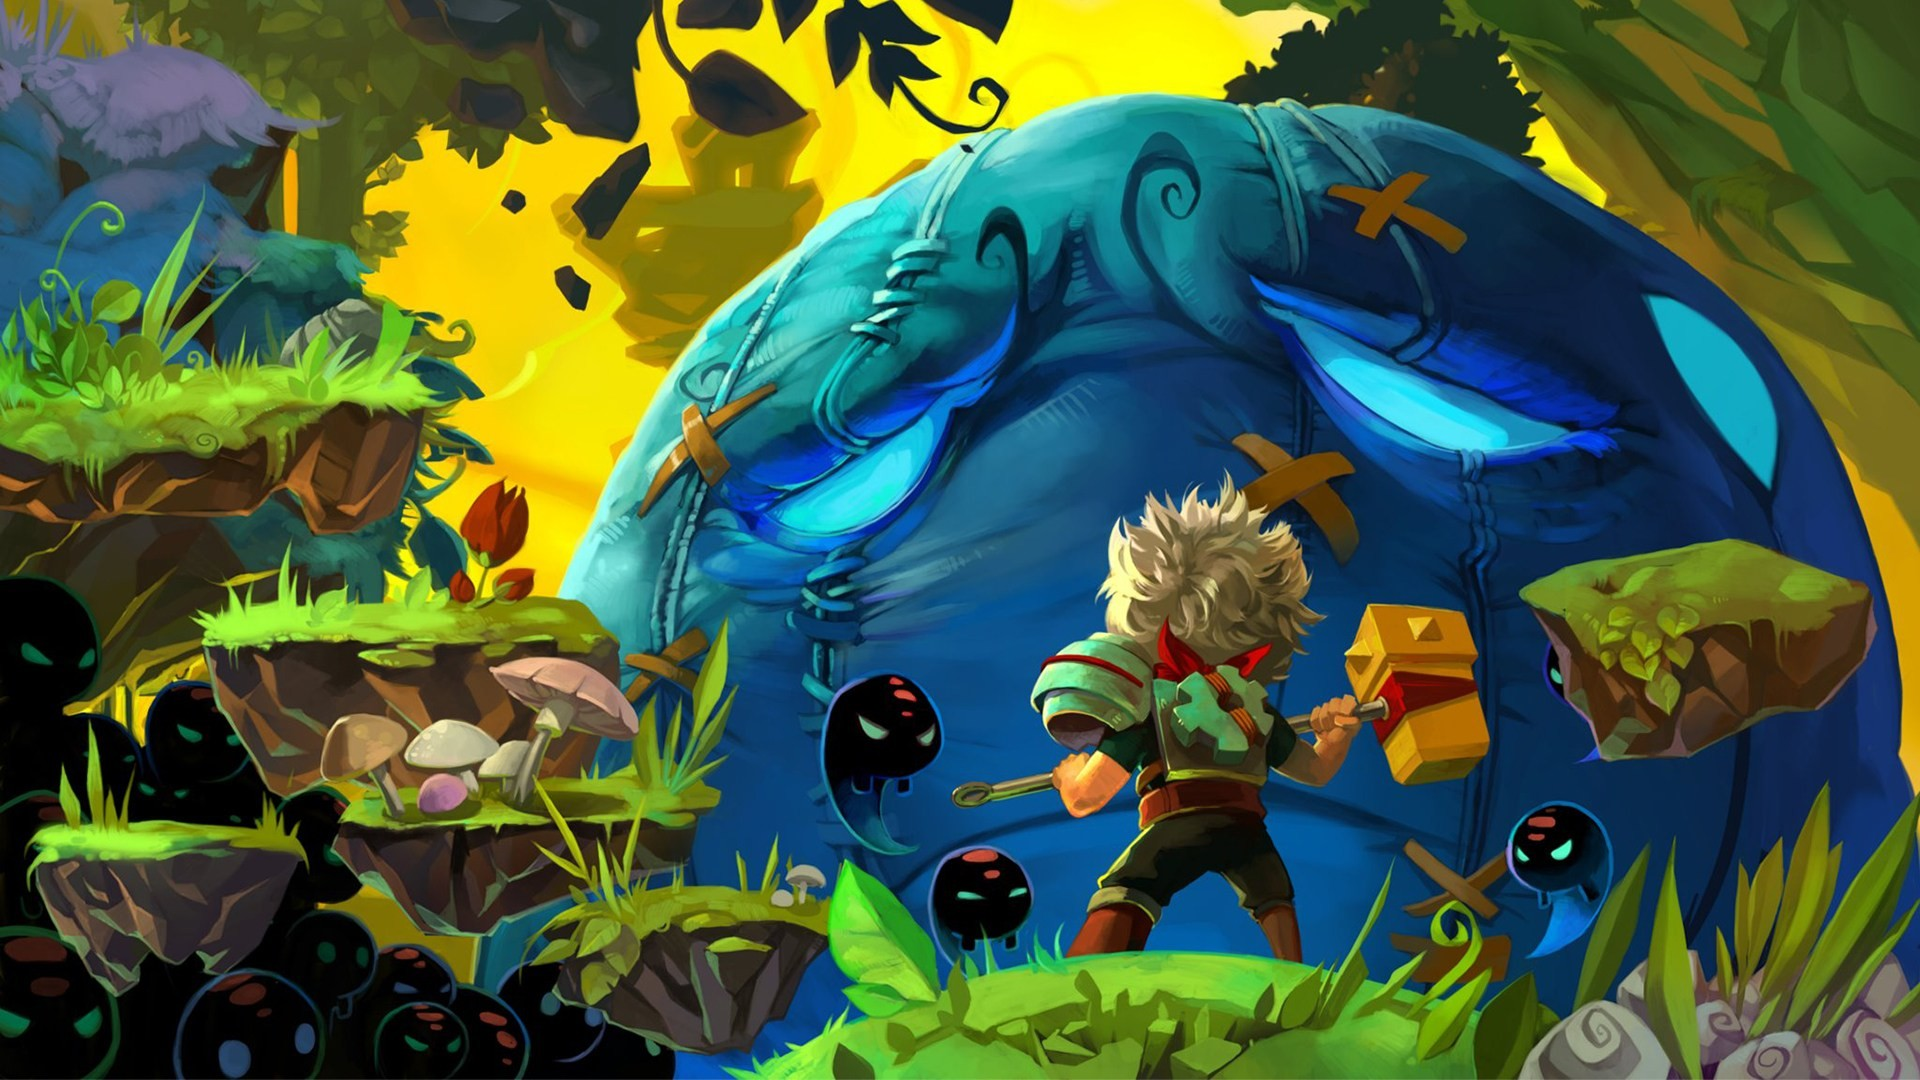 Res: 1920x1080, Indie Game Bastion (video game) 1080p HD Wallpaper Background